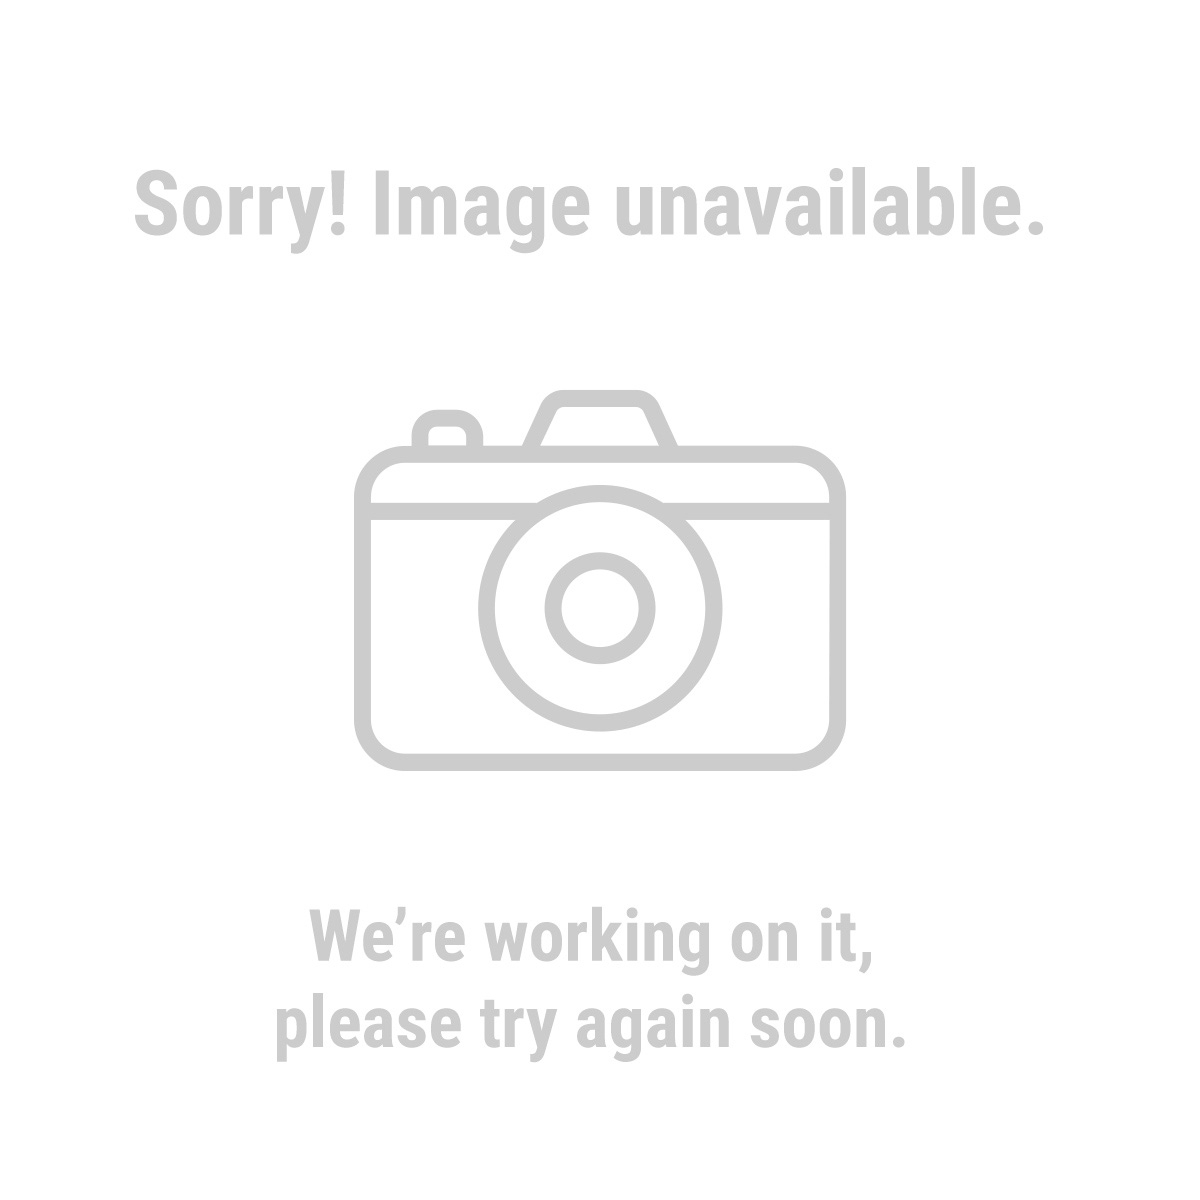 2000 Atv Winch Wiring Diagram Library Warn Remote Img